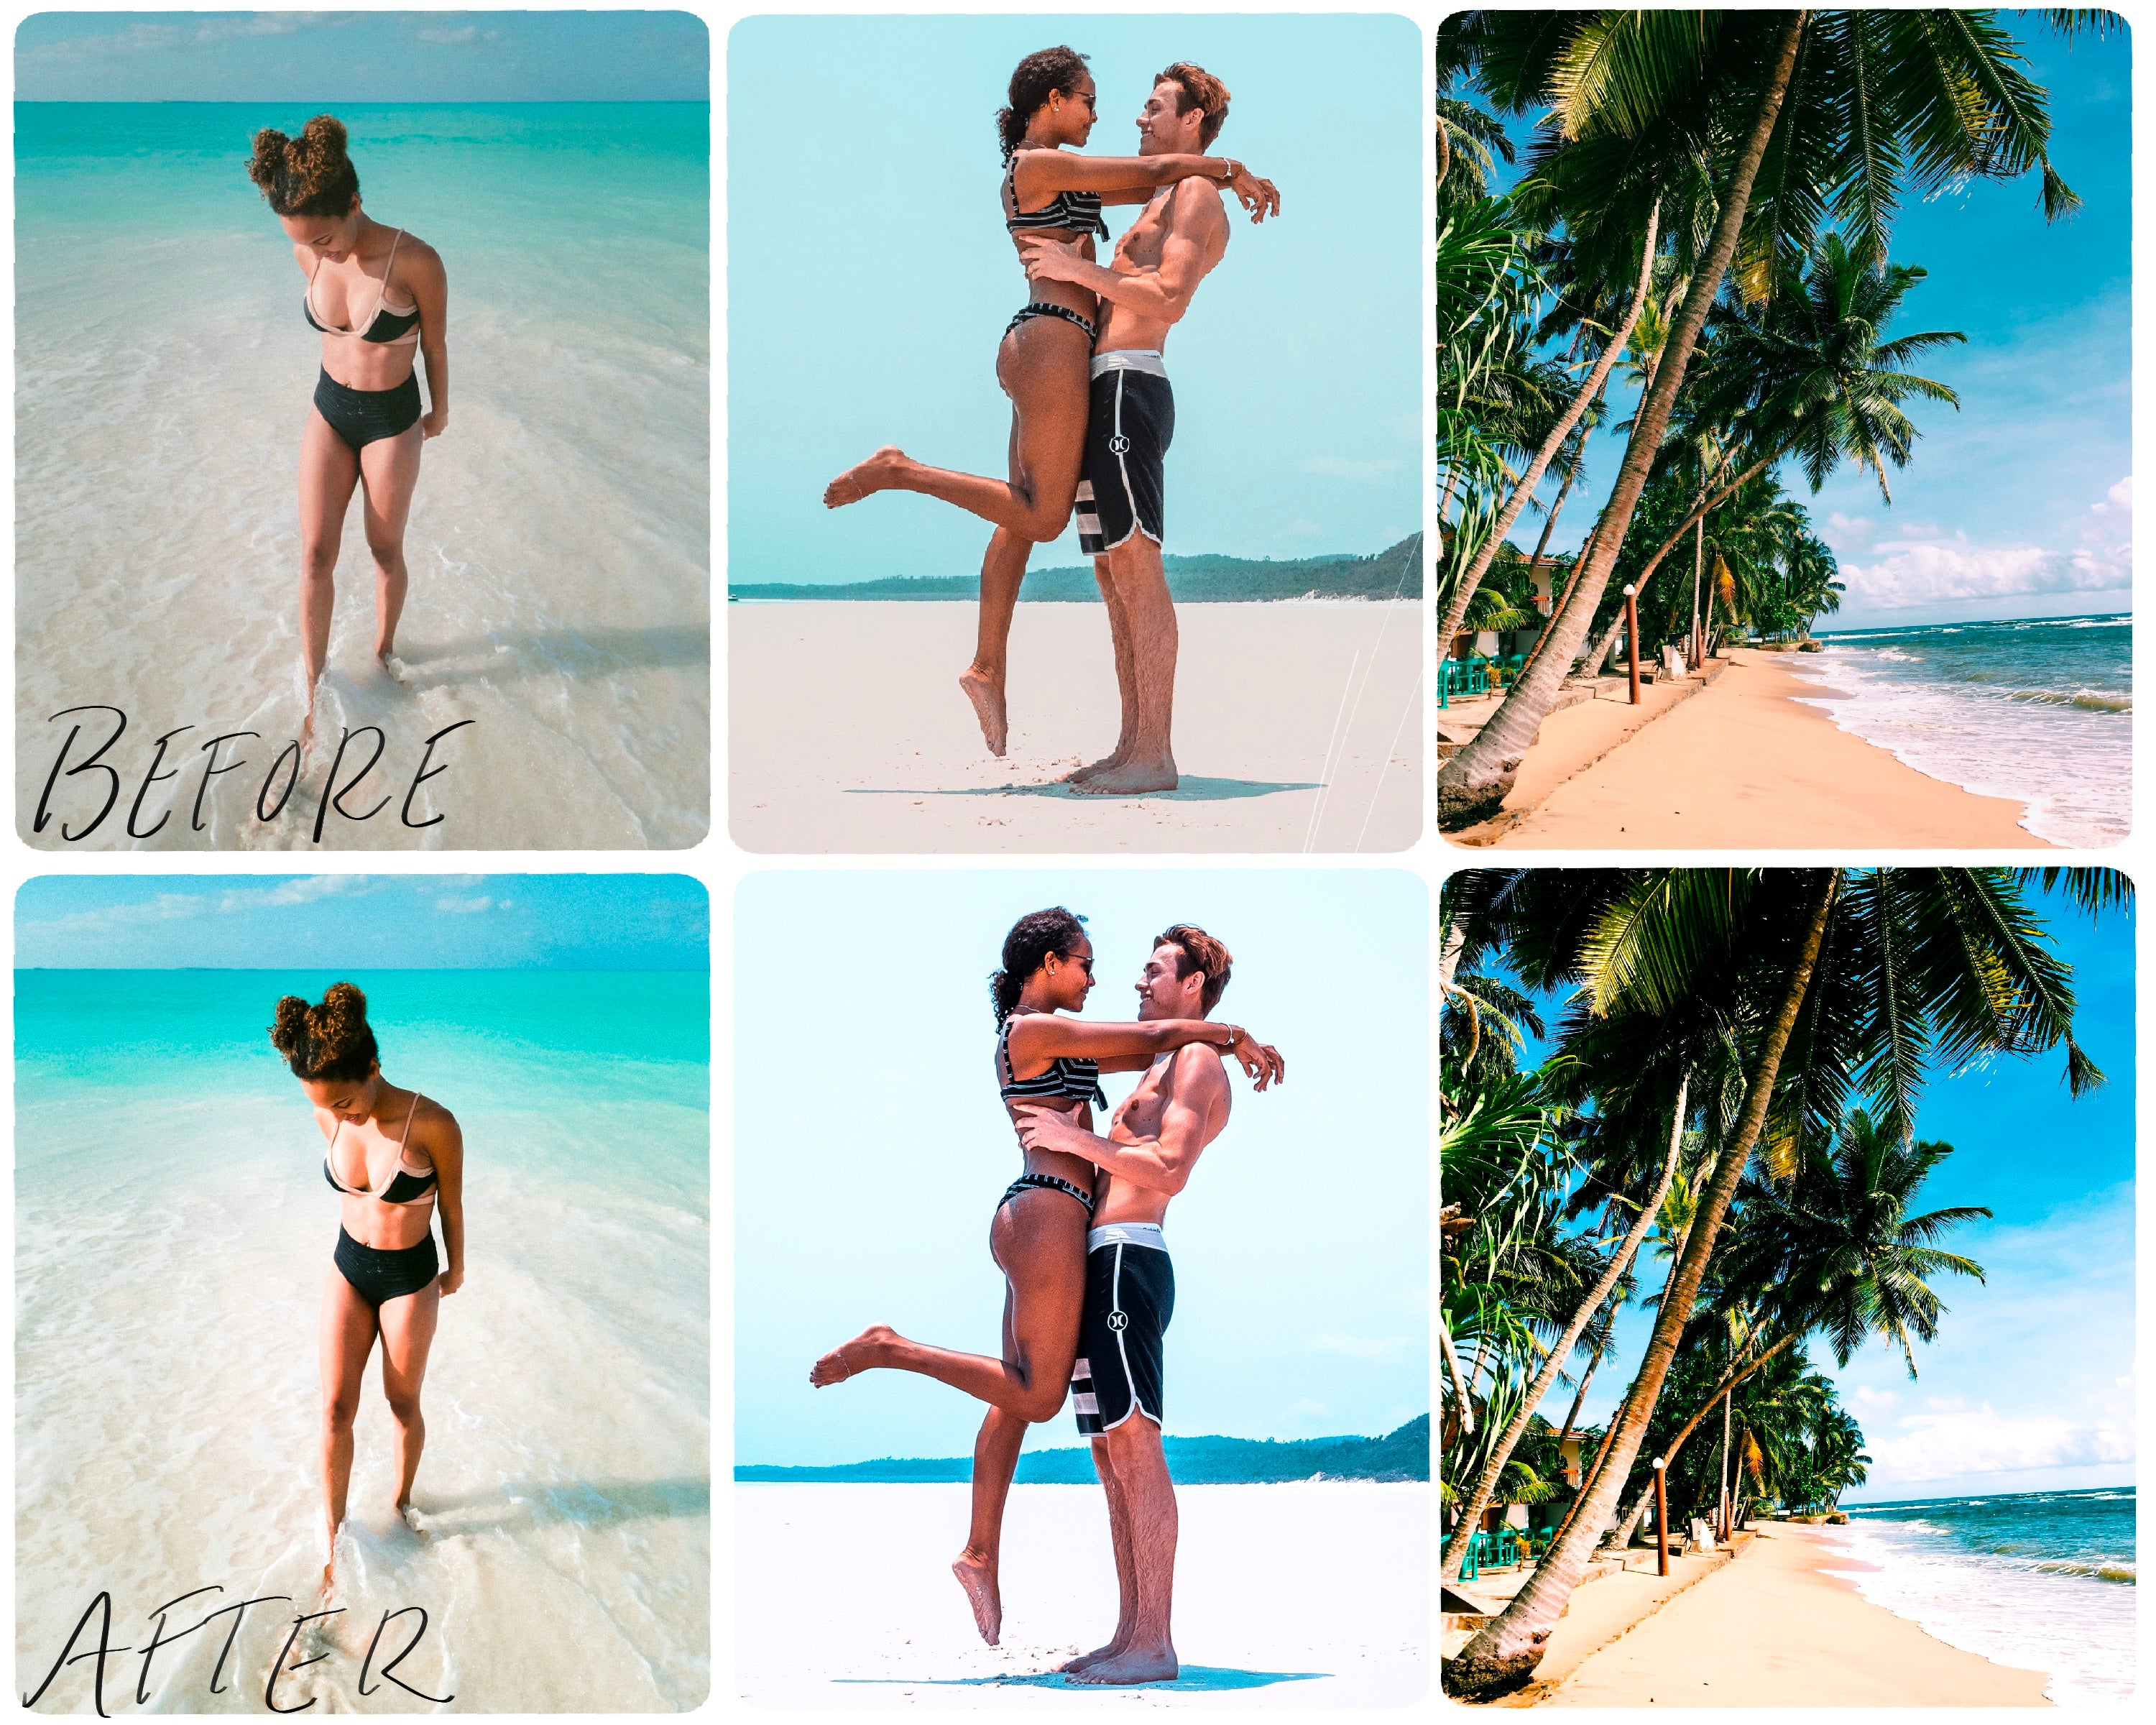 5 Beach Mobile Lightroom Presets, Photo Editing Presets, Lightroom Mobile Presets, Summer Photos Preset for Instagram, Bloggers-Roam Wild Designs